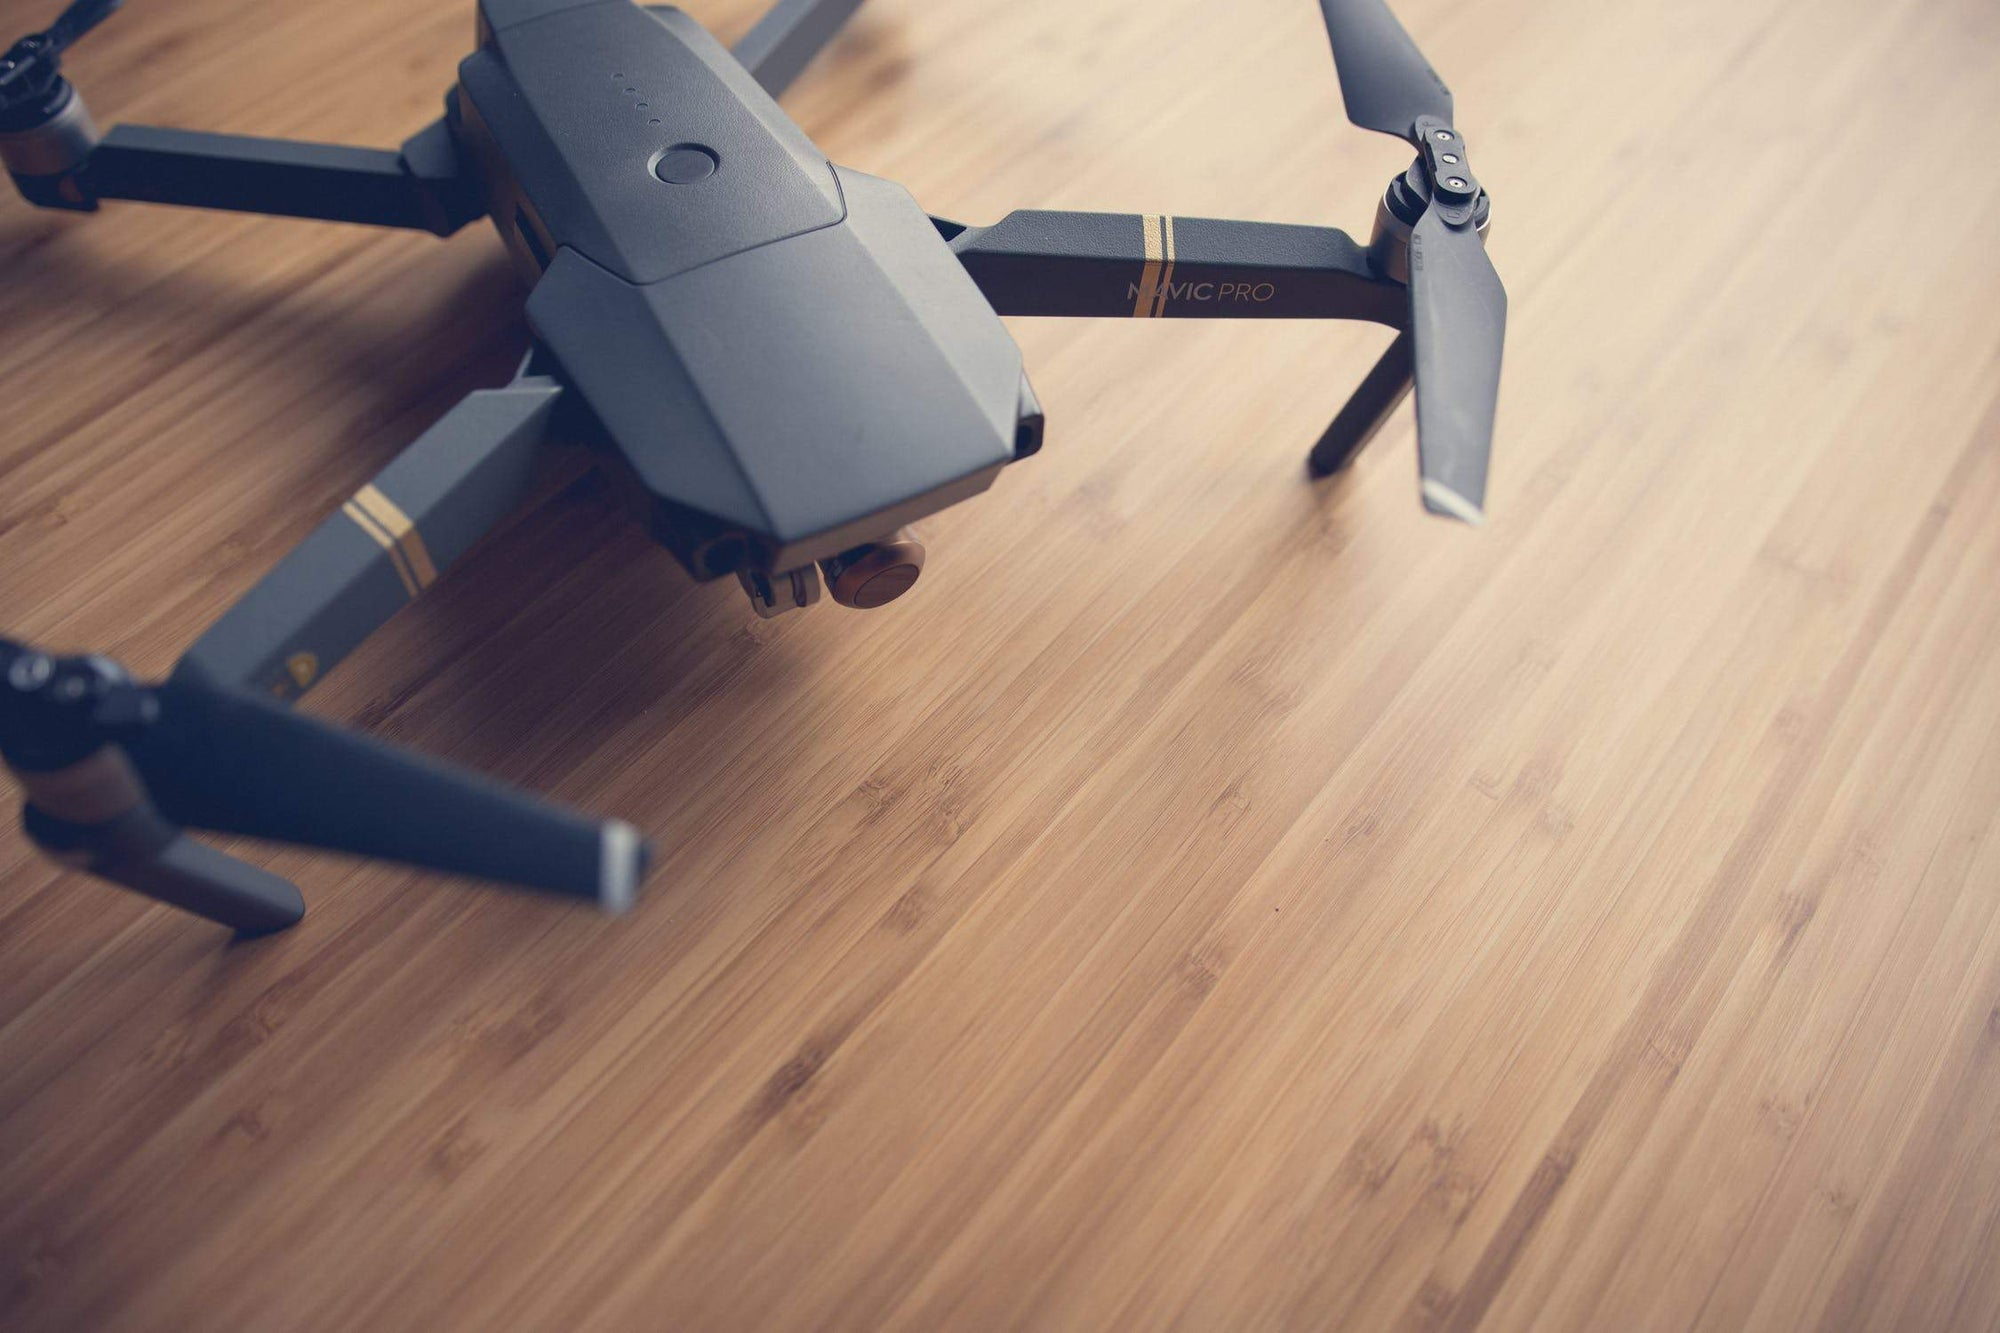 The Top 5 Drones Of 2019